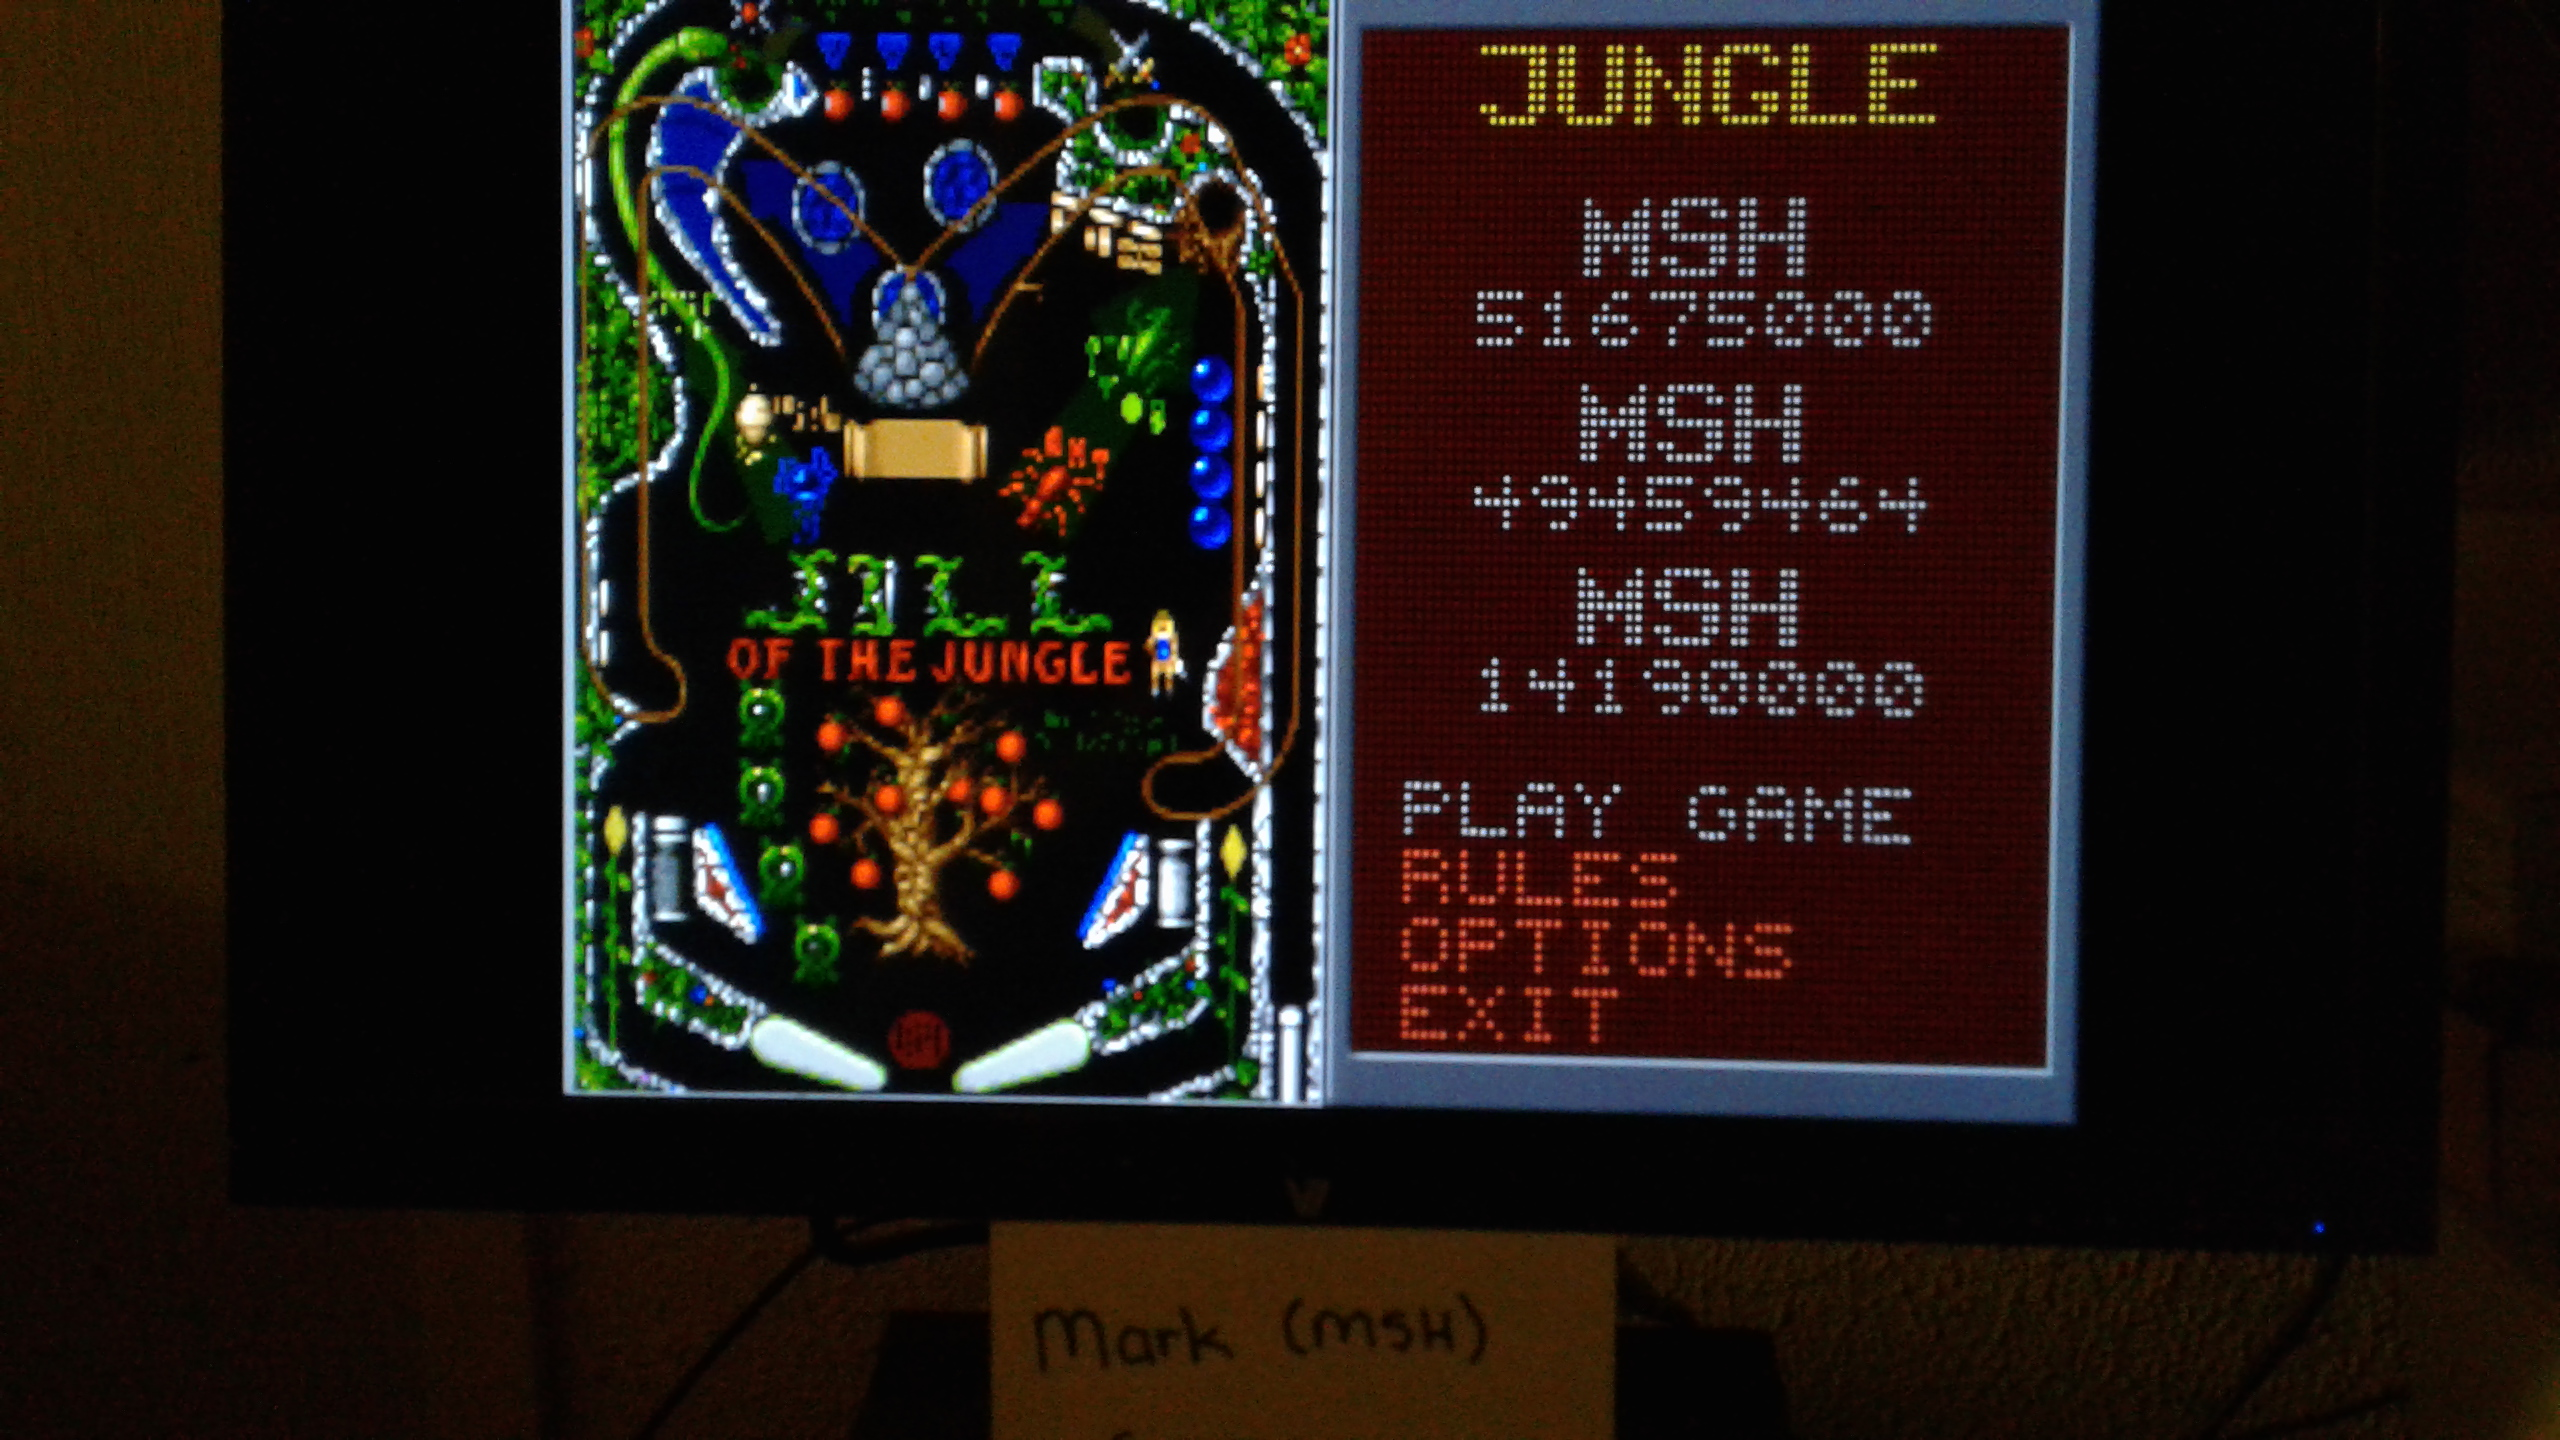 Mark: Epic Pinball: Jungle Pinball (PC Emulated / DOSBox) 51,675,000 points on 2019-05-13 01:53:36